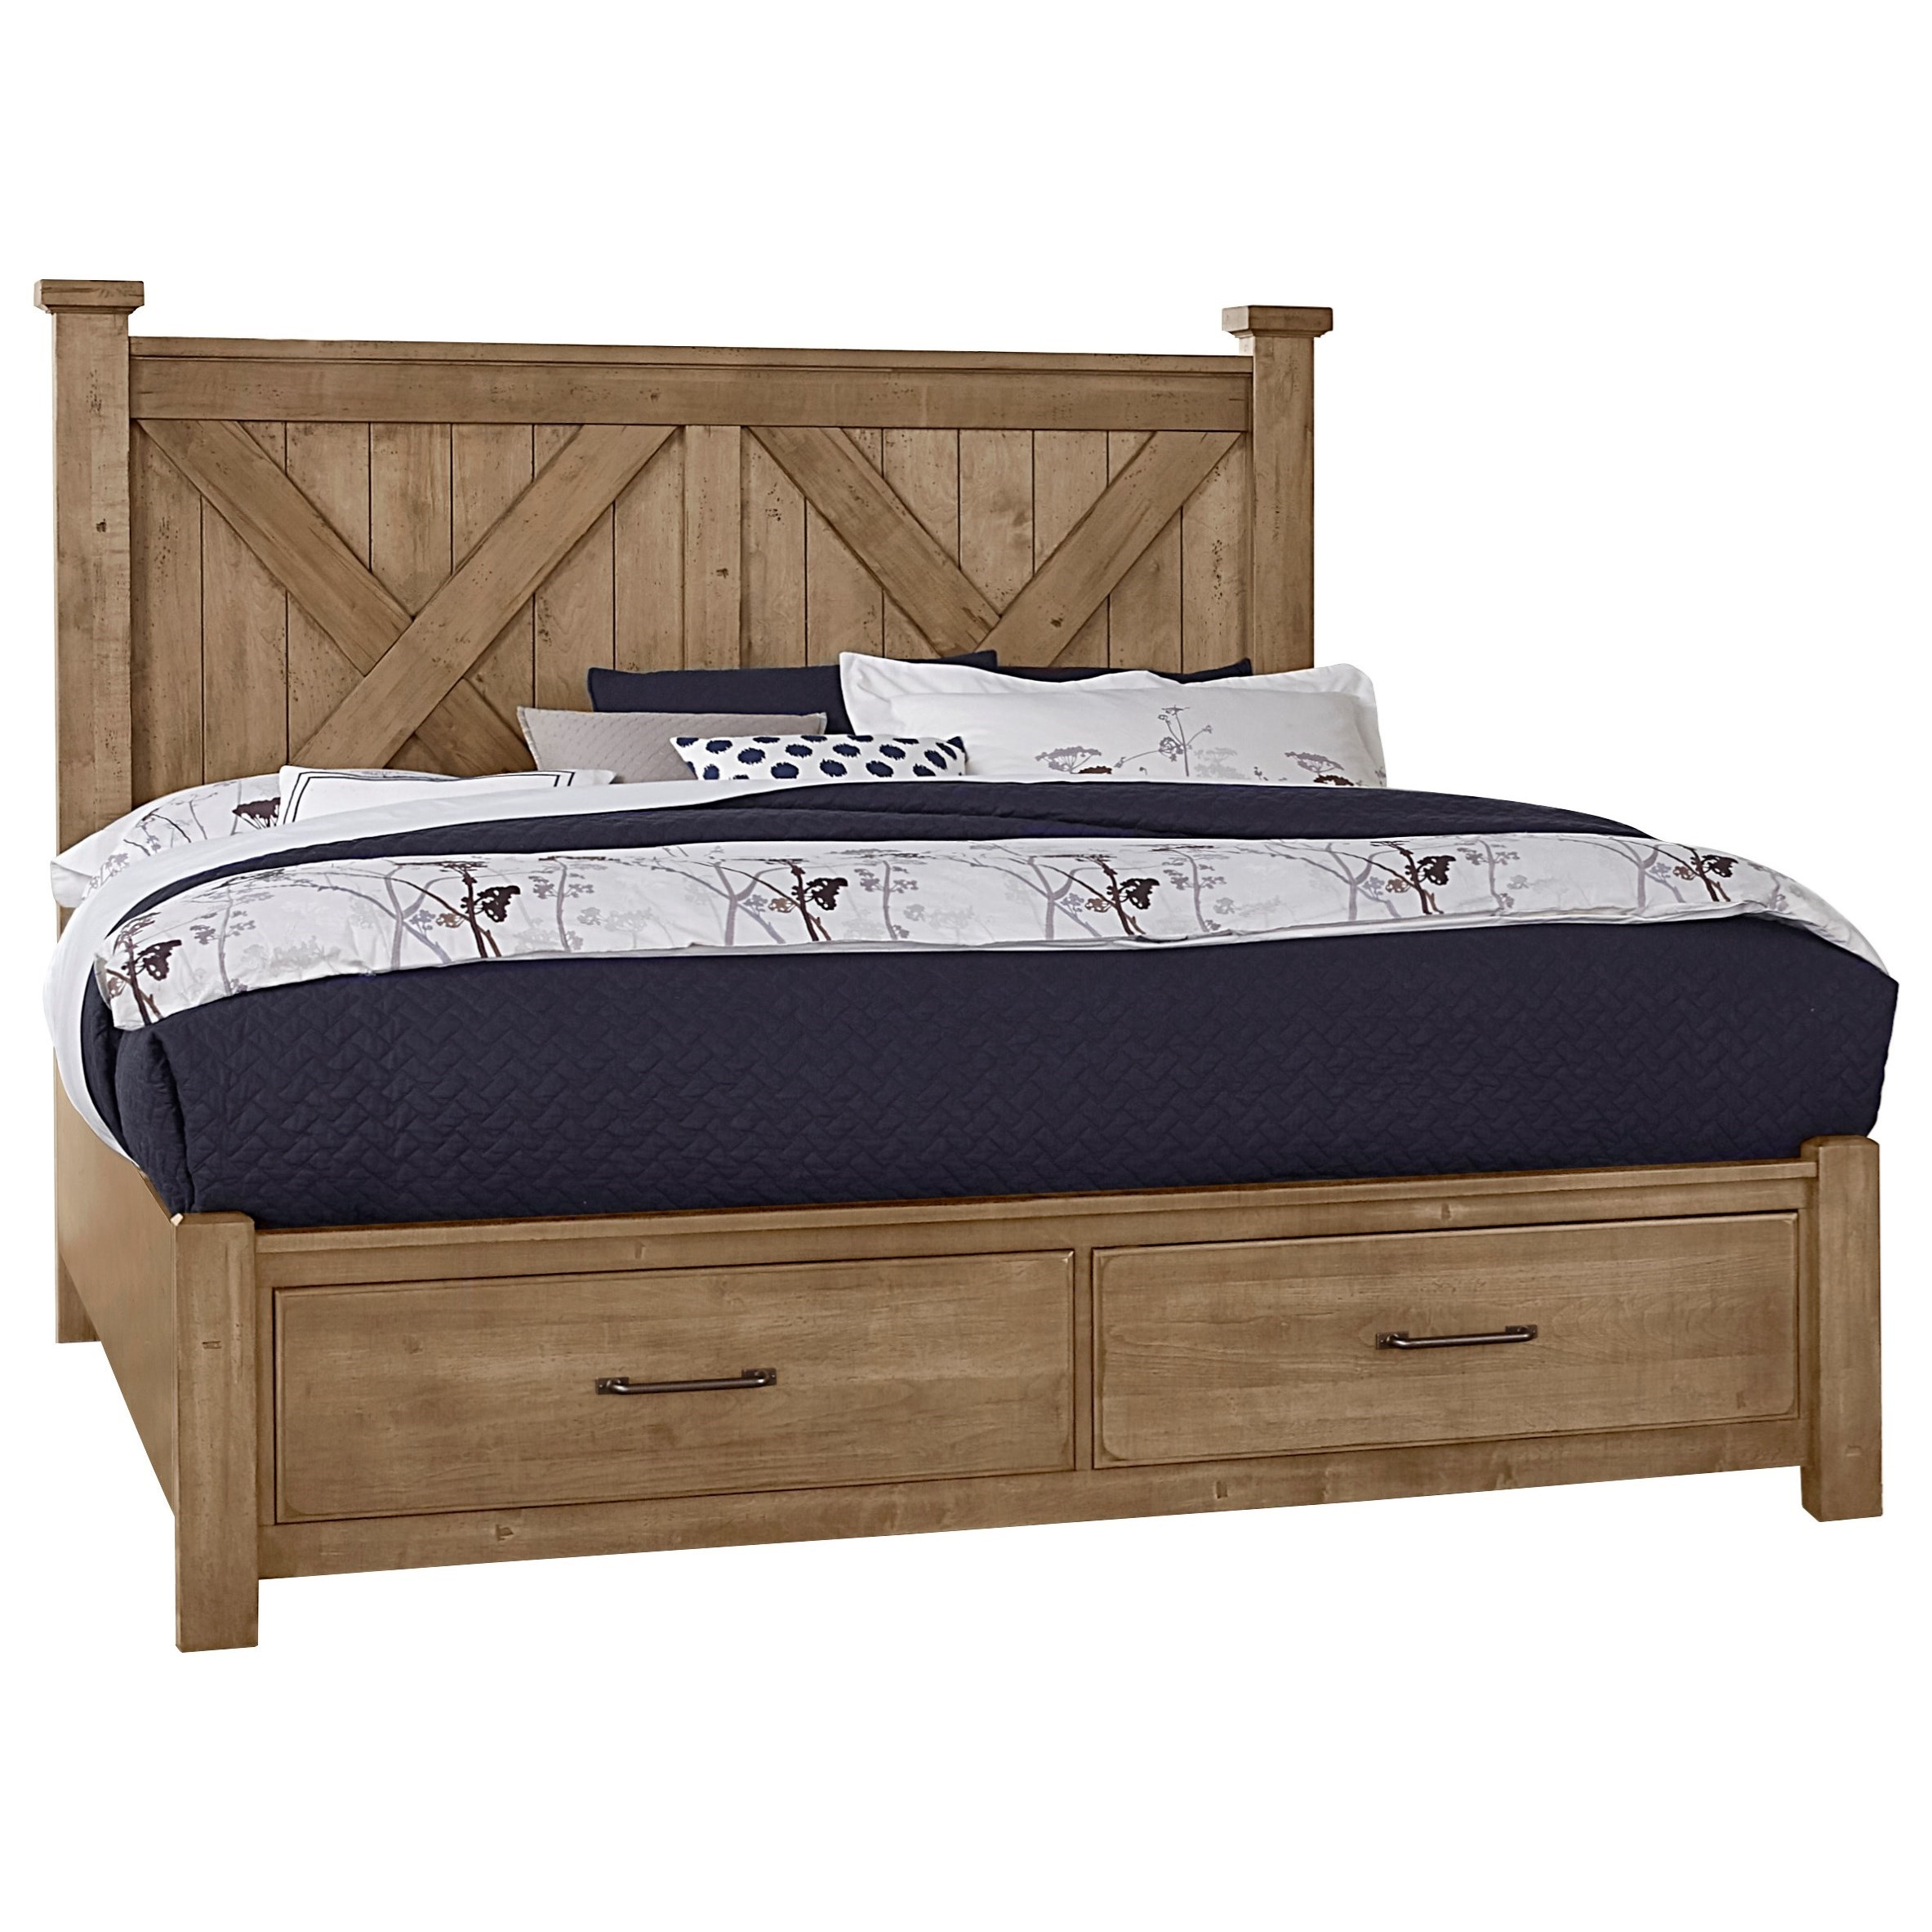 Cool Rustic Queen X Bed with Storage Footboard by Artisan & Post at Northeast Factory Direct